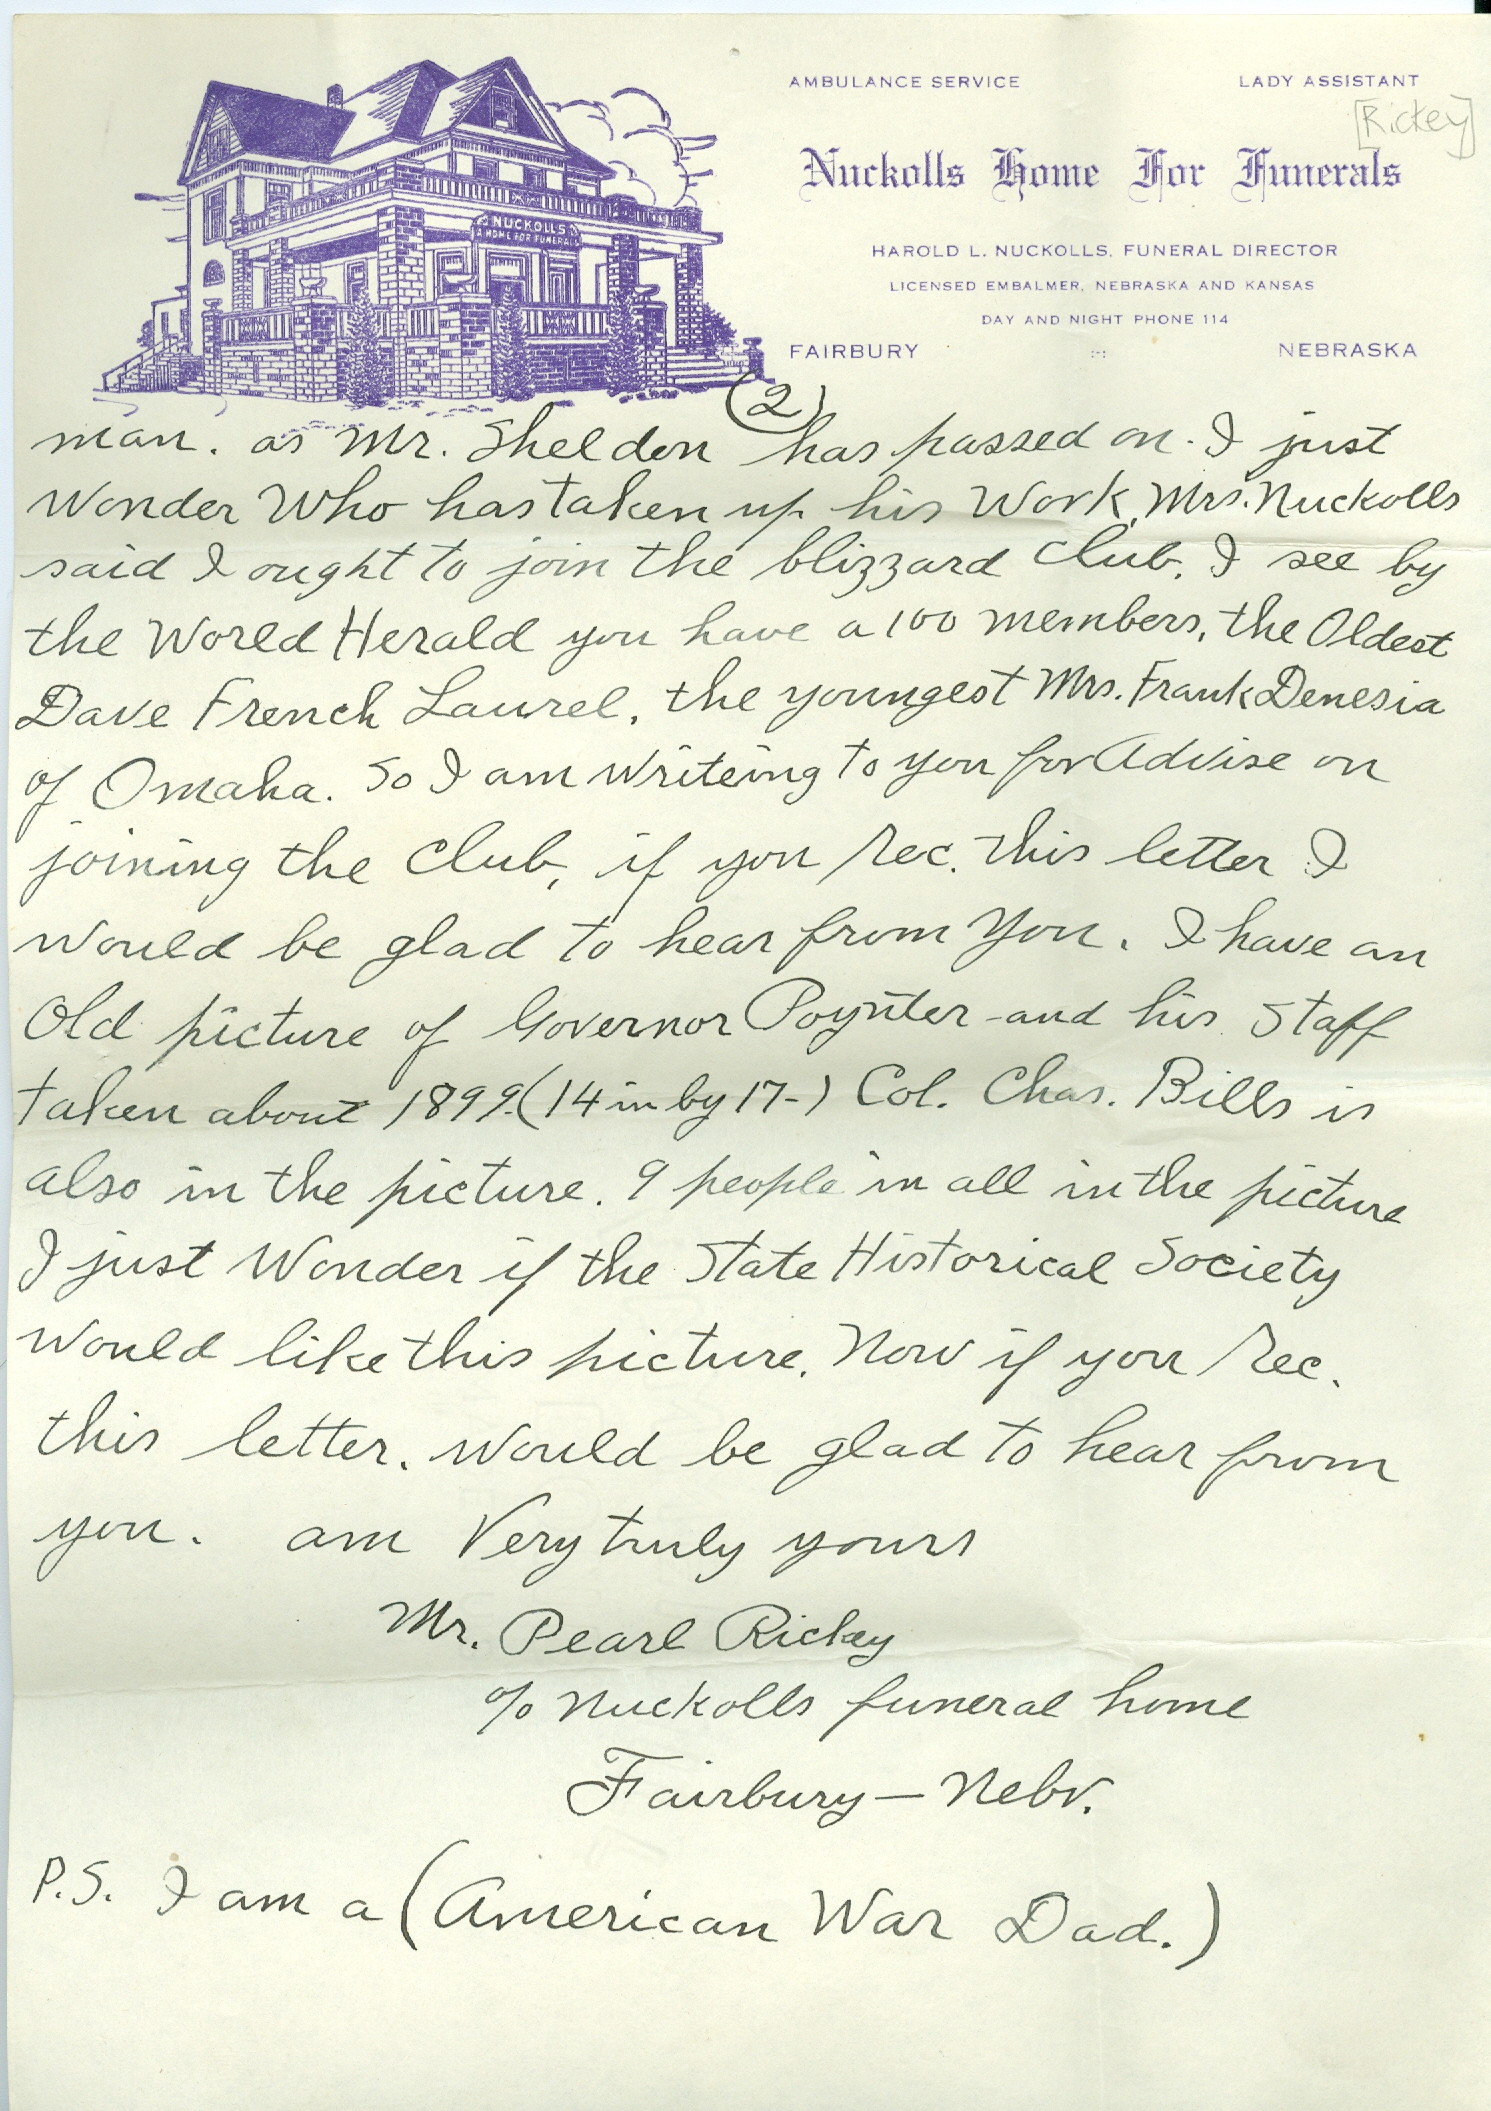 Letter by Pearl F. Rickey, p. 2 (NSHS RG3658.AM)